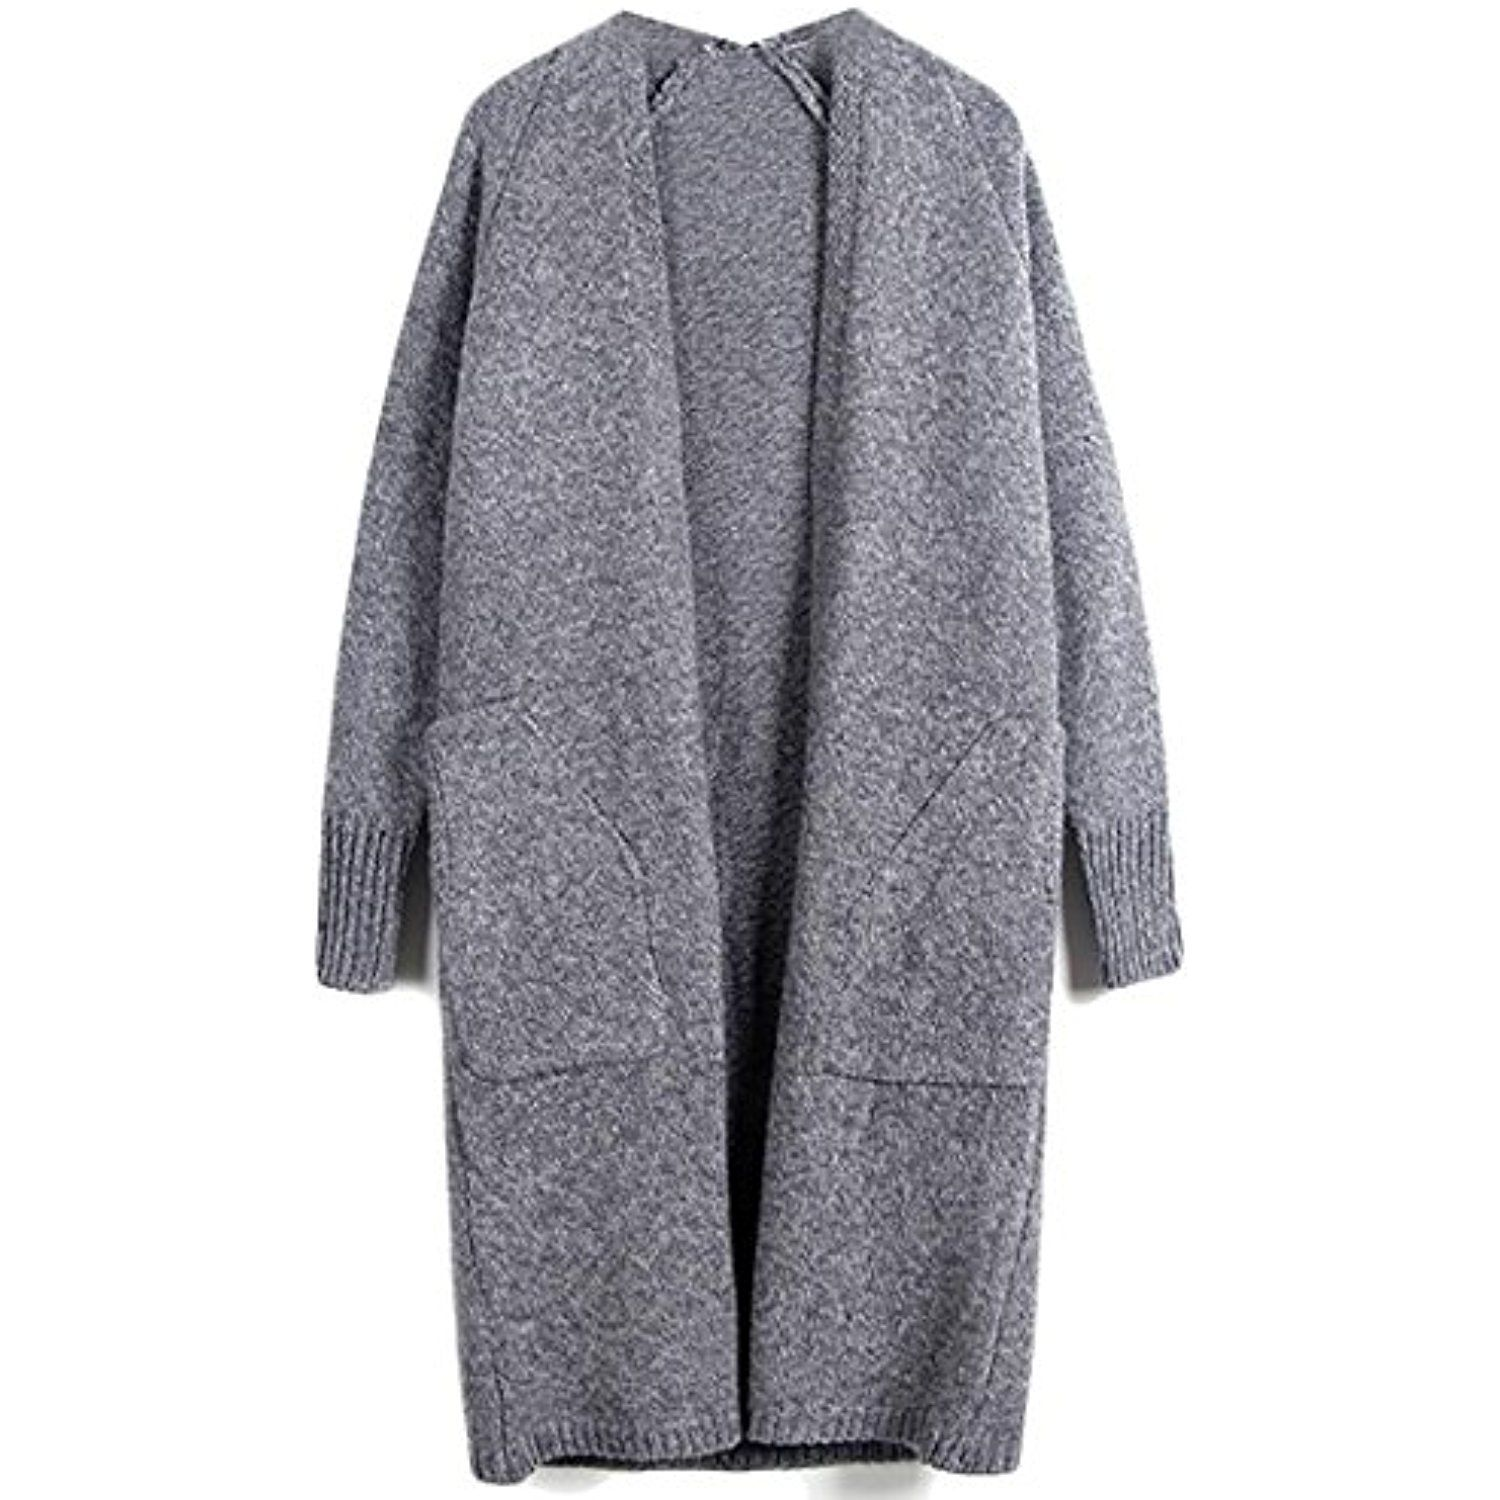 86ab567a70 Womens Casual Knit Tweed Pocket Open Front Cardigan Sweaters -- Check out  the image by